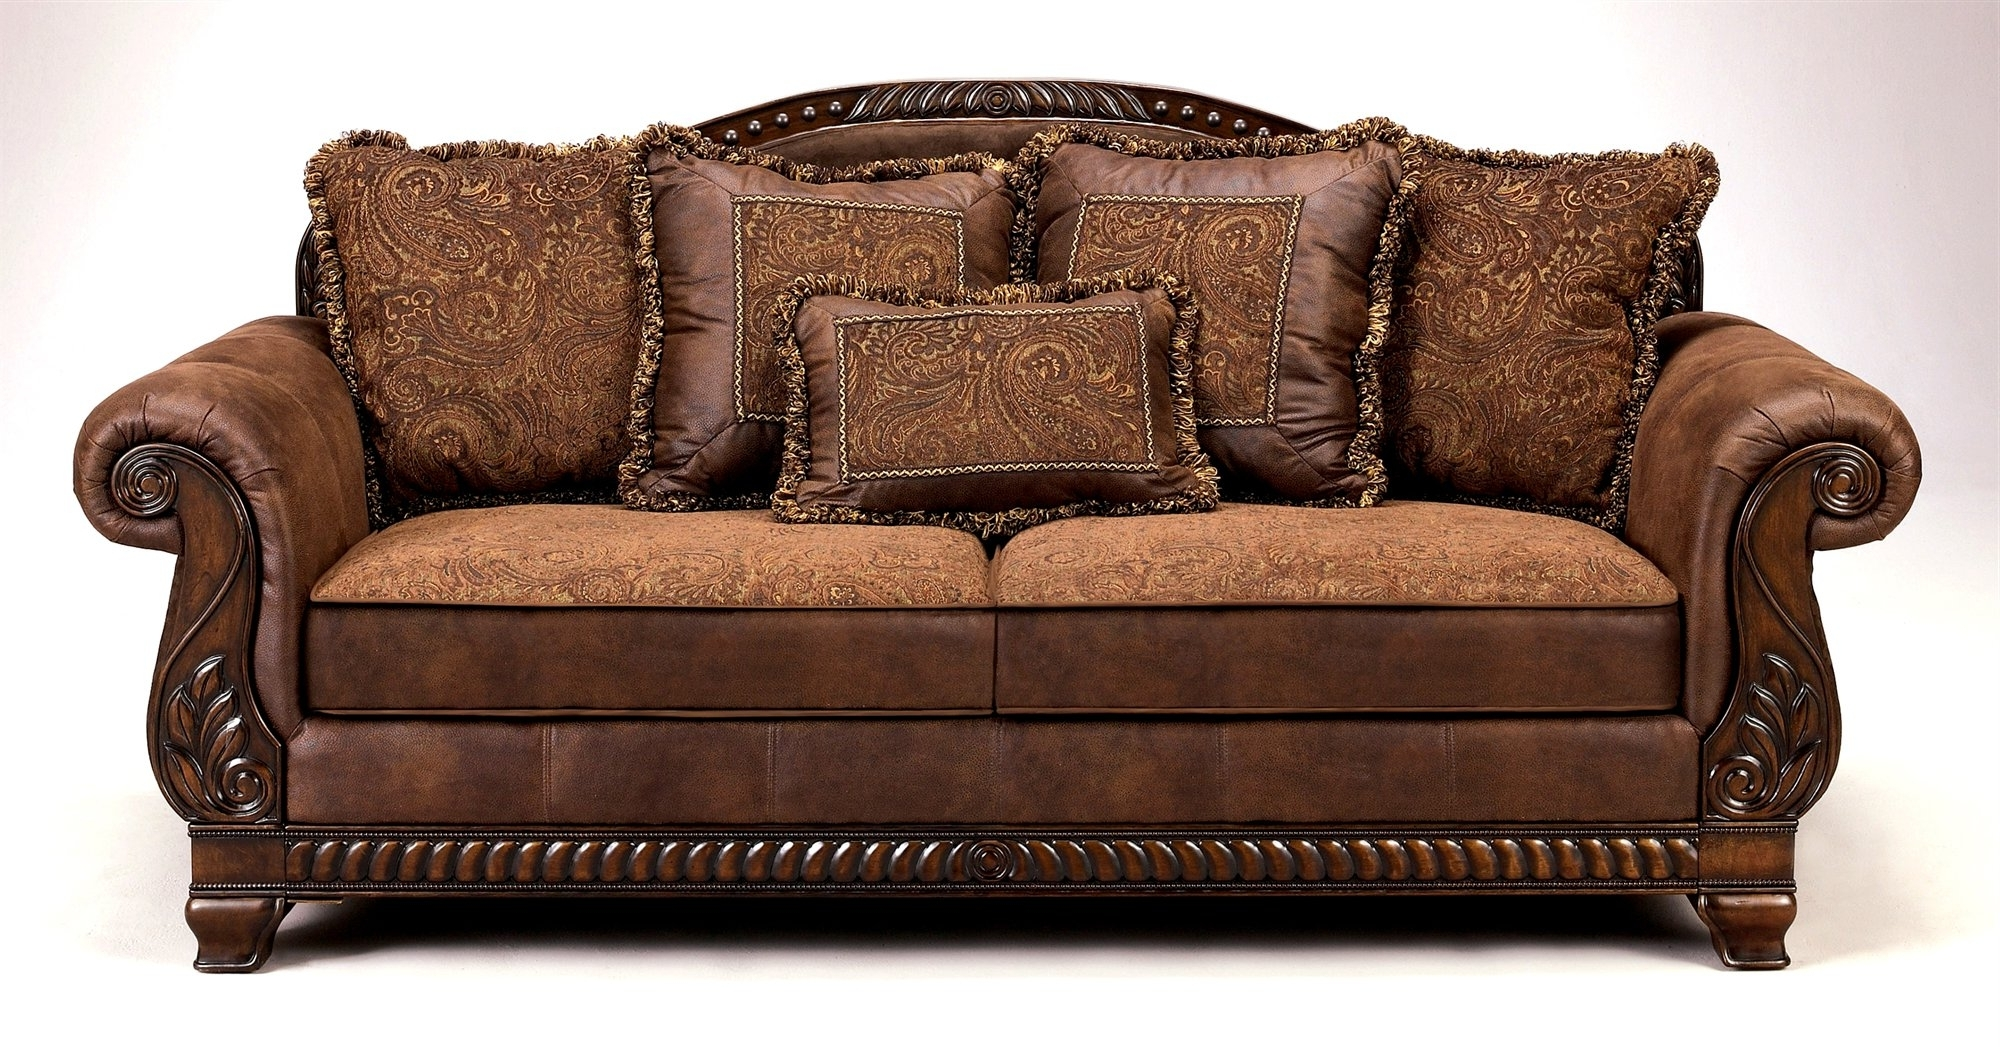 Traditional Sofas And Chairs For Most Popular Best Sofa Deals Elegant Sofas Living Room Furniture Chairs Living (View 3 of 15)